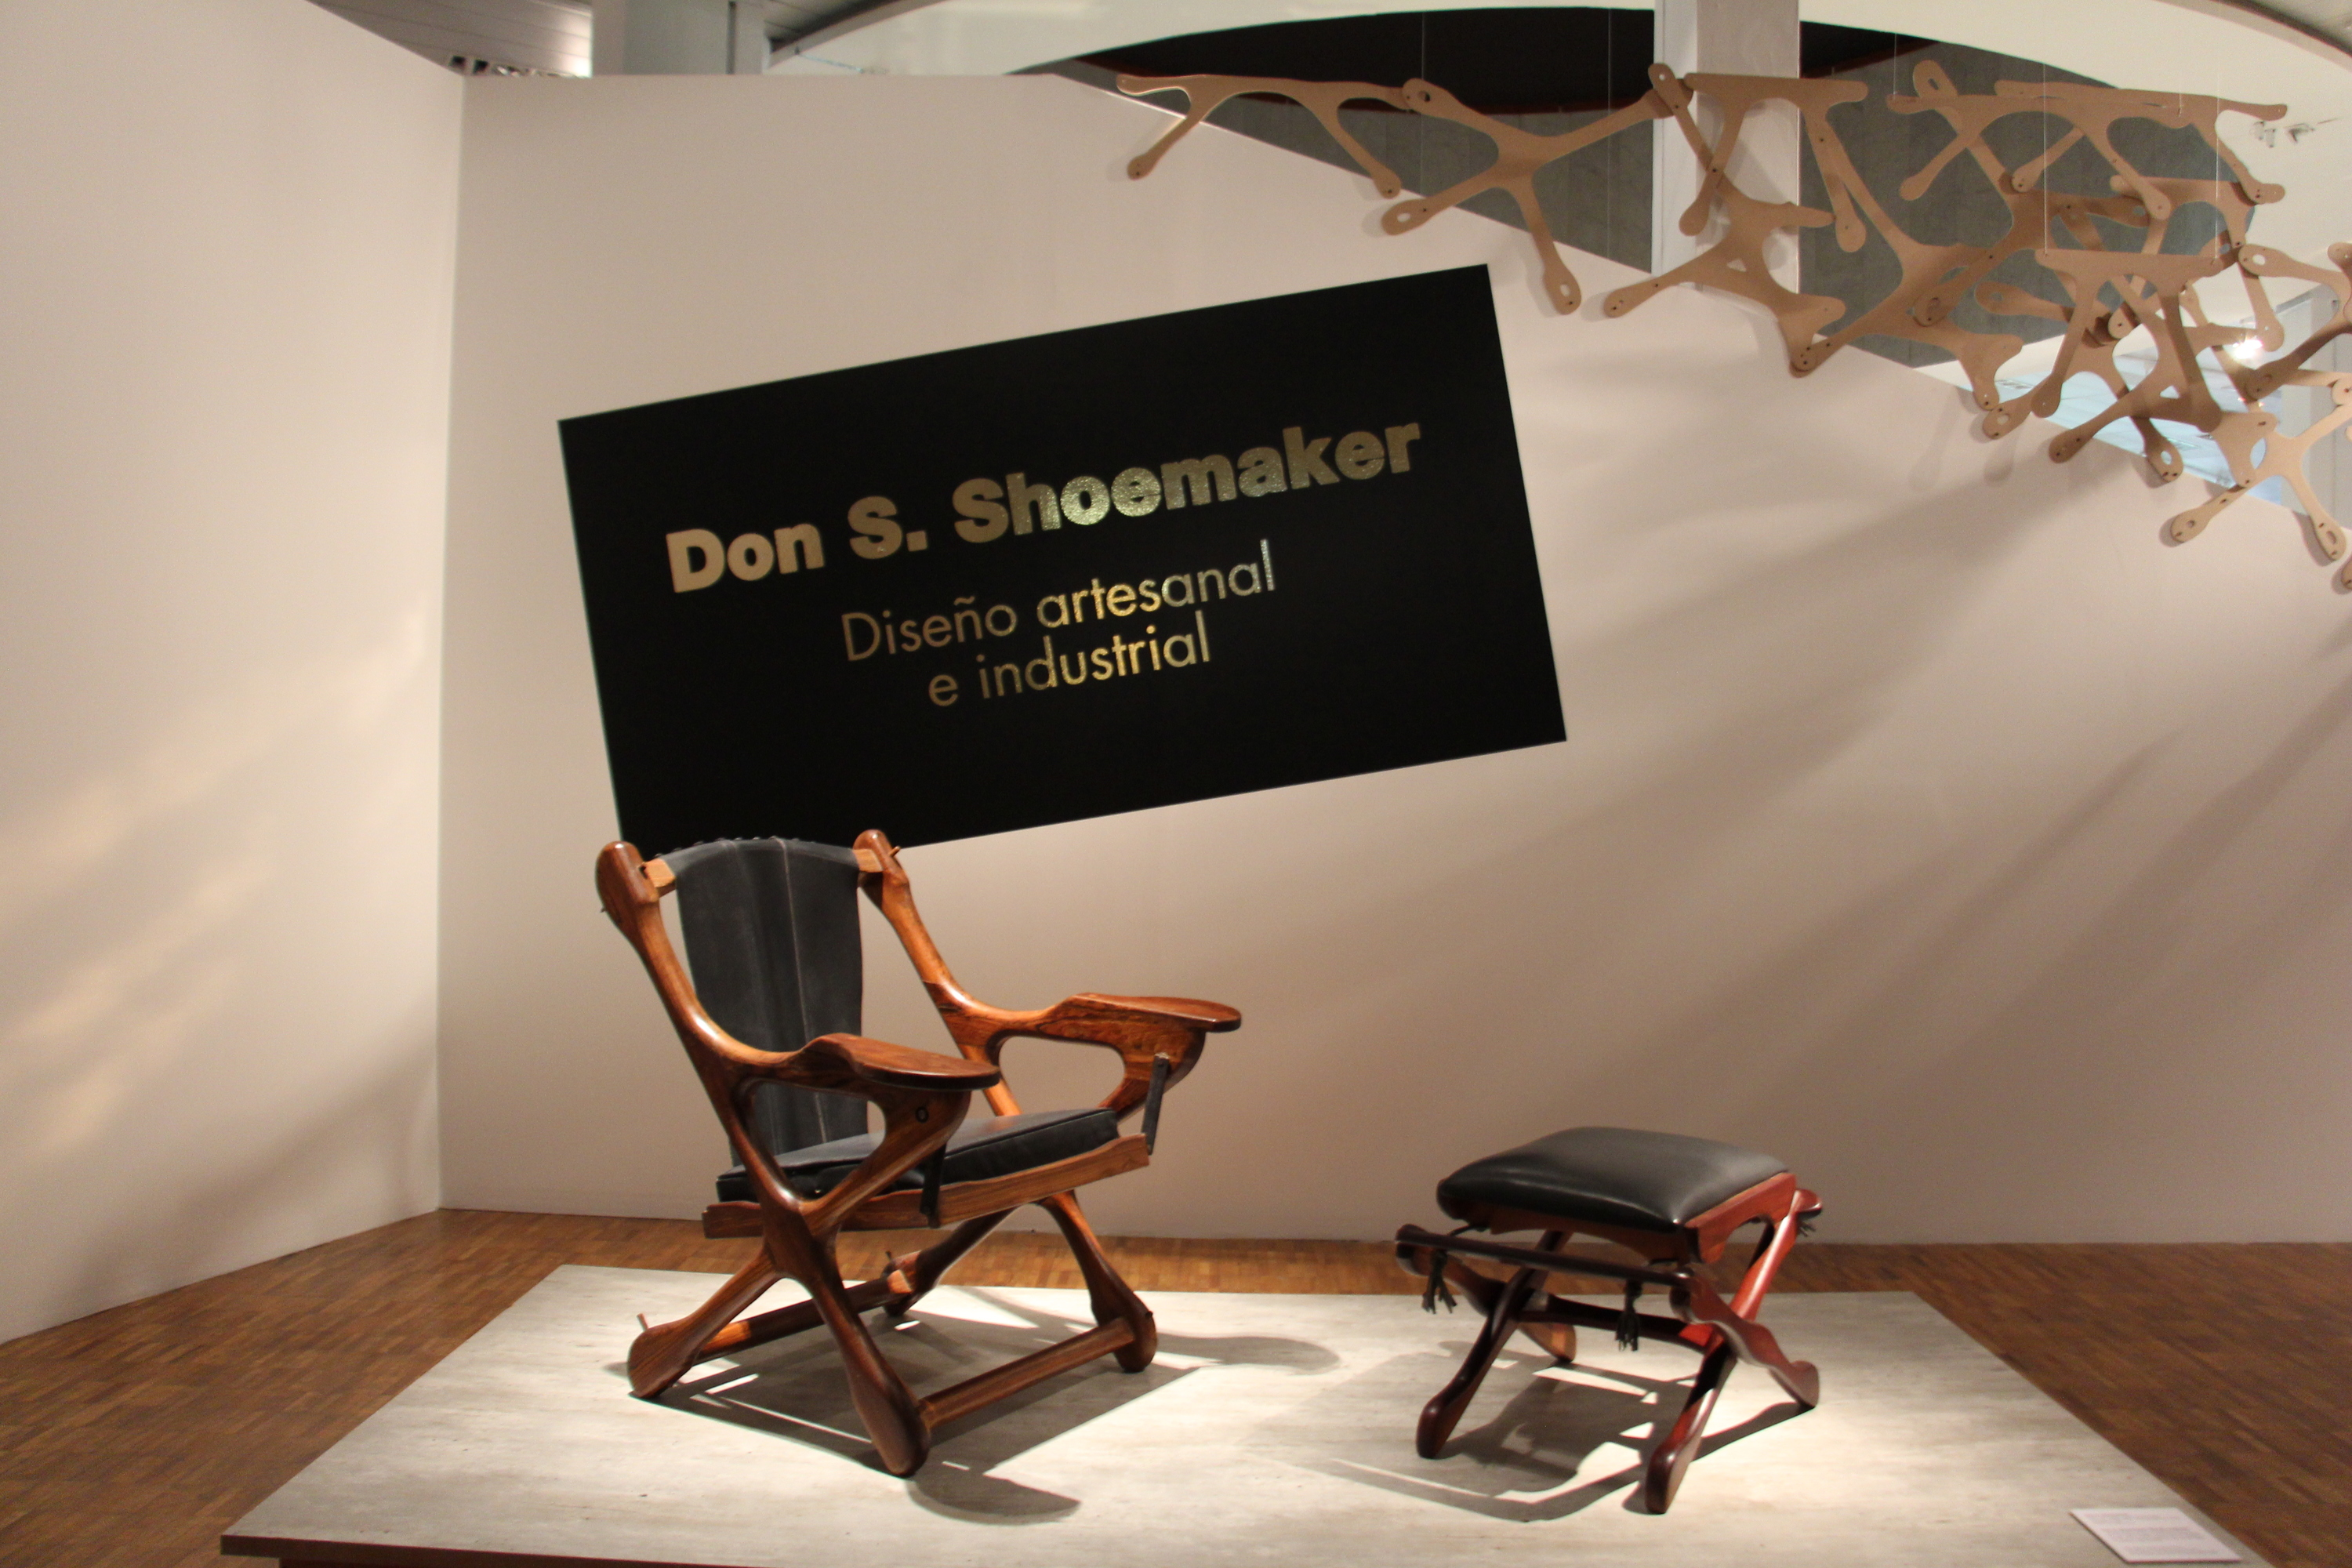 Don S. Shoemaker. Diseño artesanal e industrial